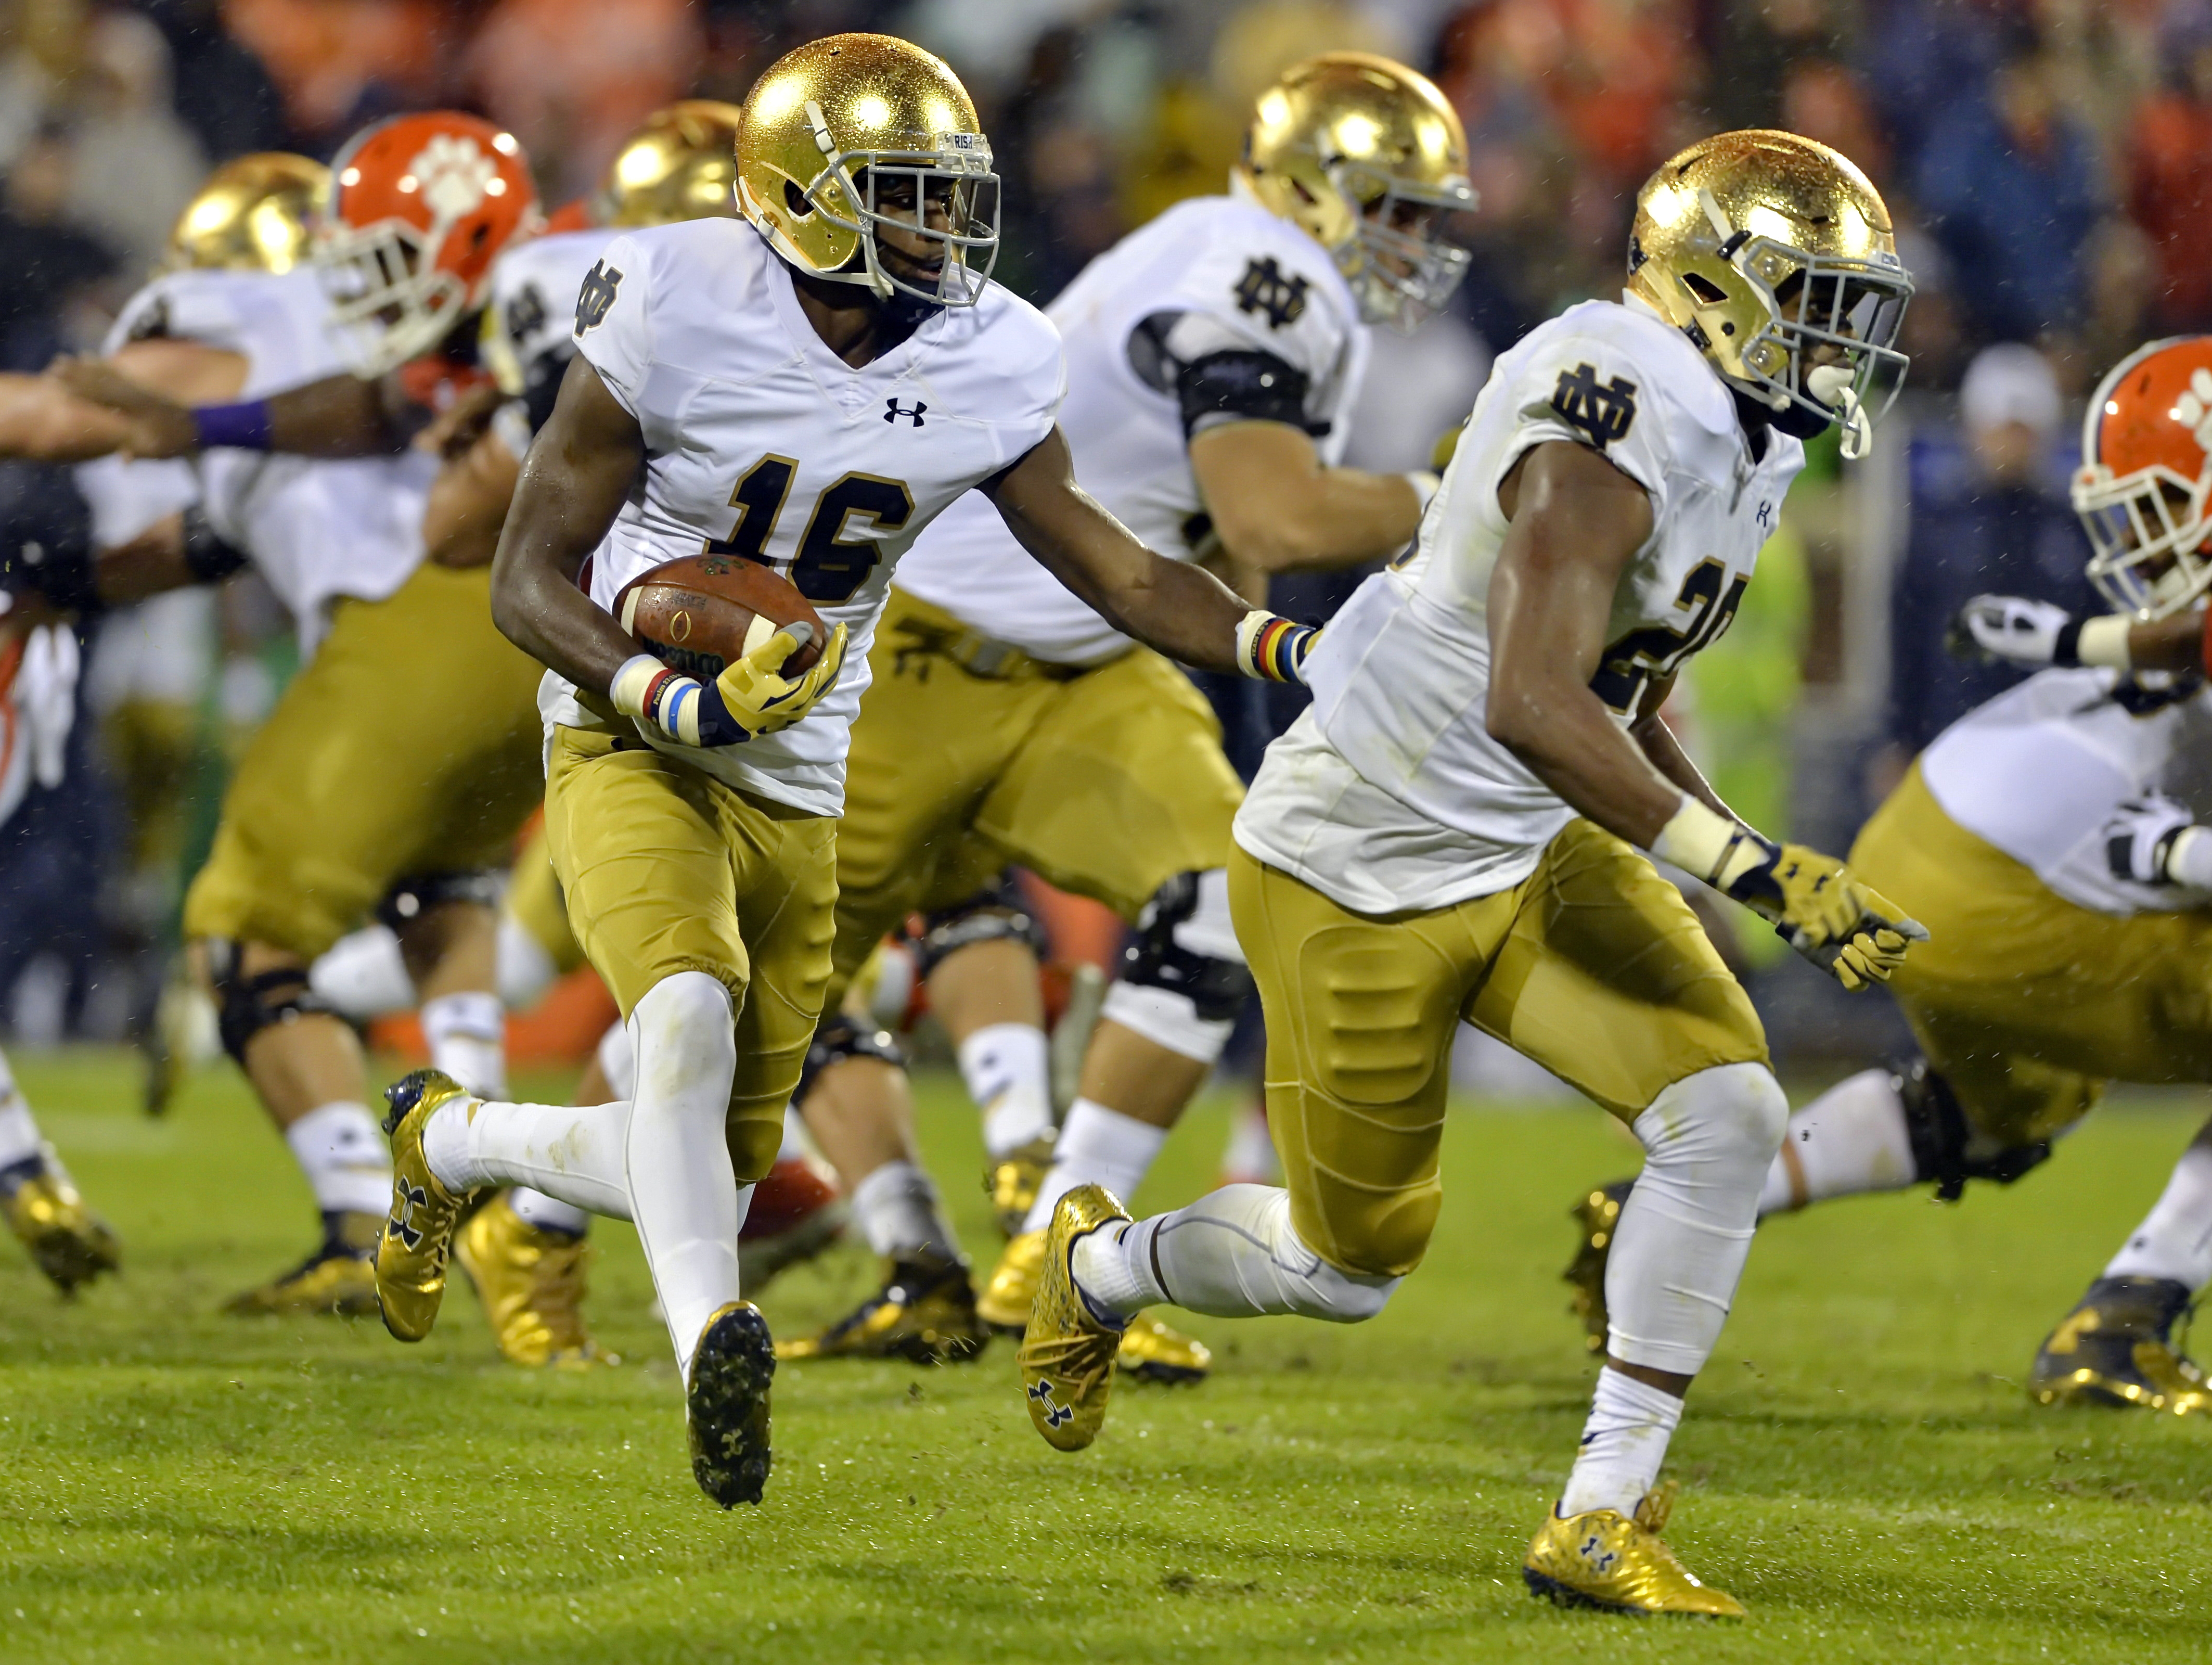 FILE - In this Oct. 3, 2015, file photo, Notre Dame's Torii Hunter Jr. (16) with blocking help from C. J. Prosise, rushes out of the backfield during the first half of an NCAA college football game against Clemson,  in Clemson, S.C. Hunter Jr. is eager to